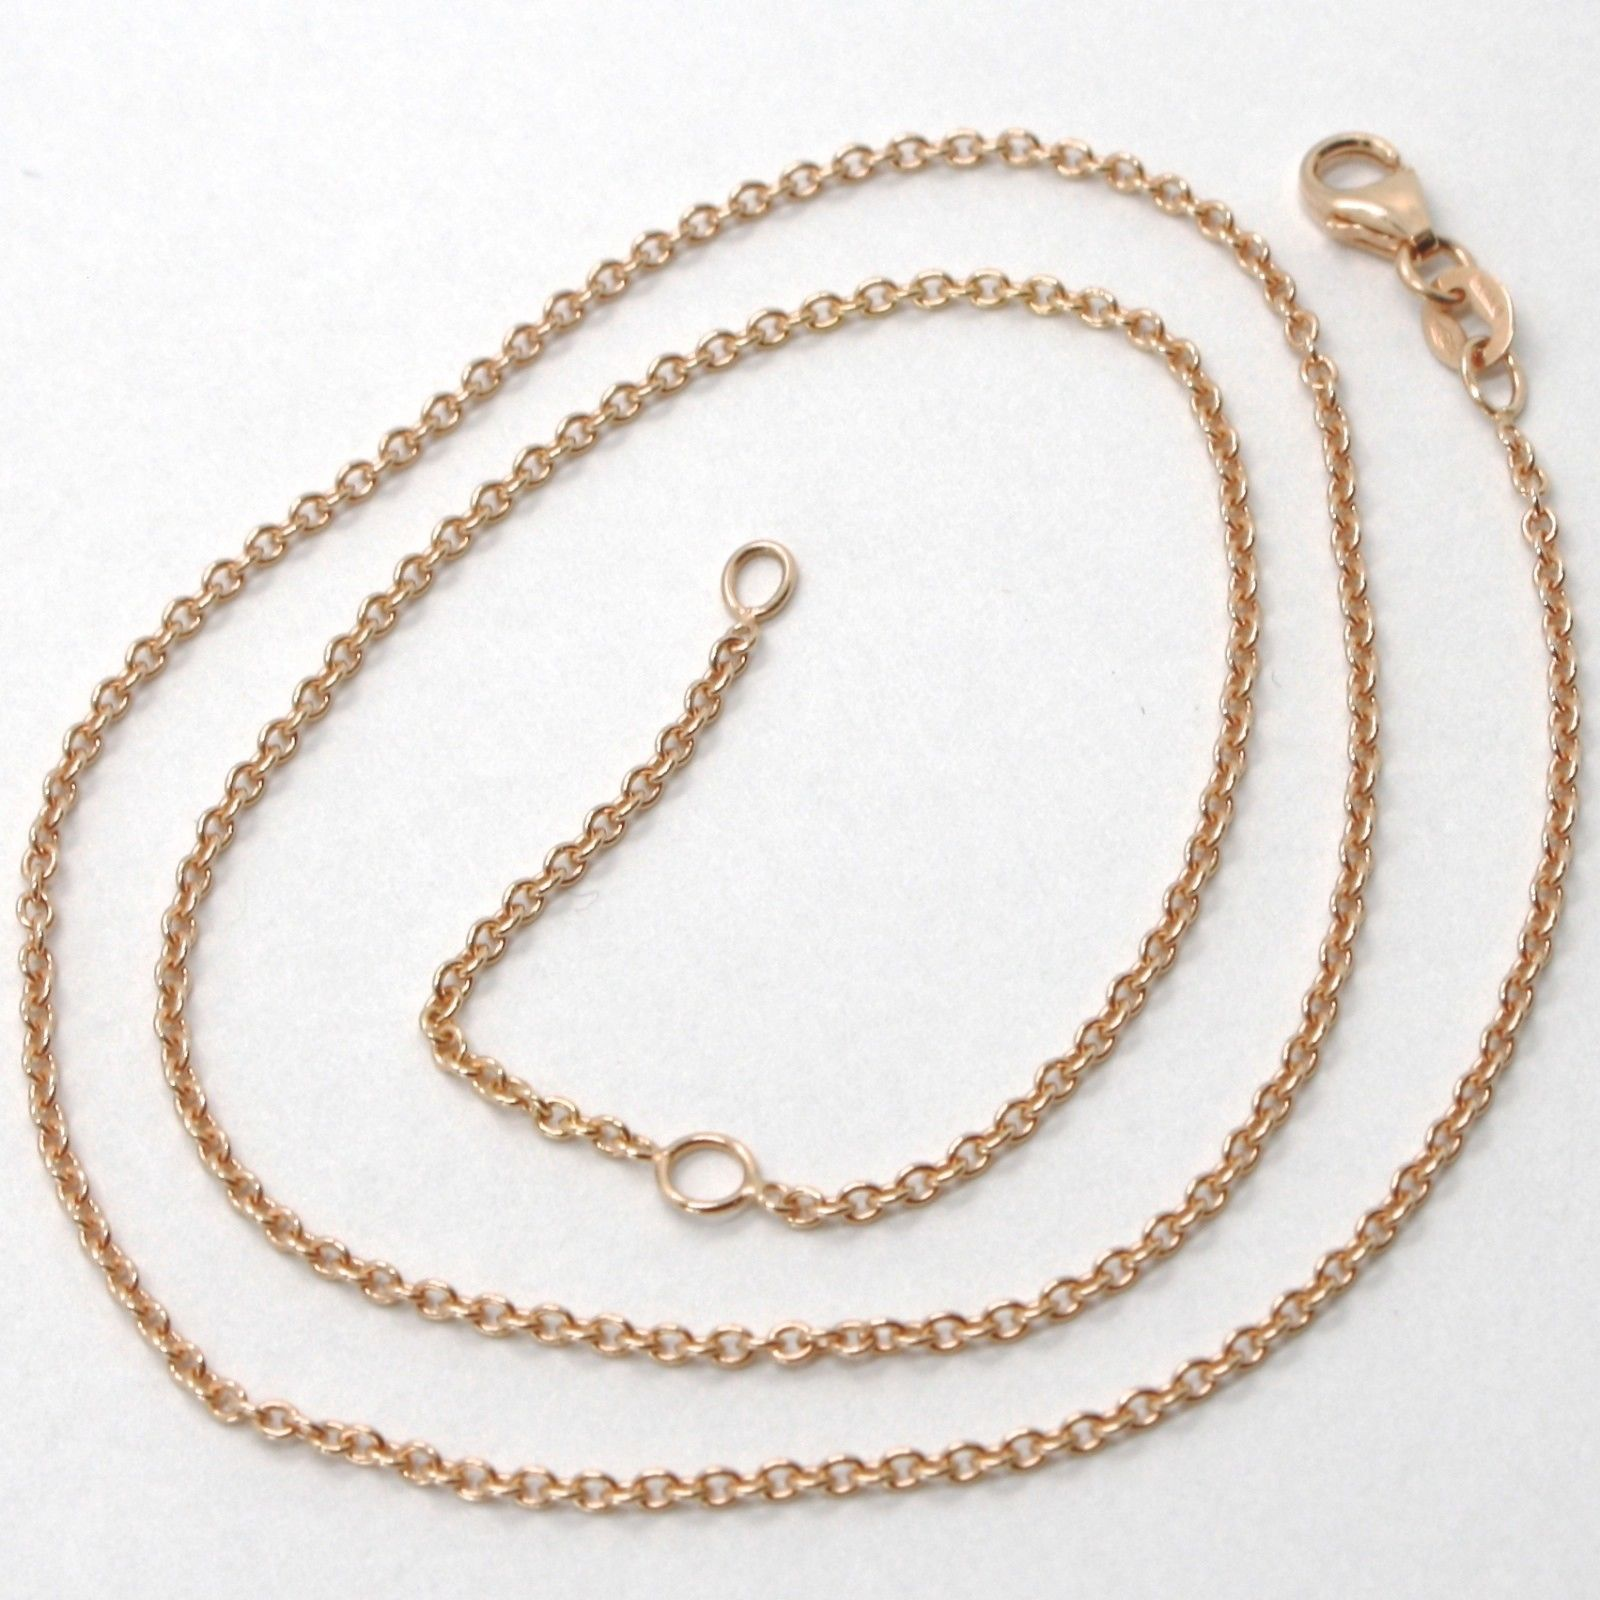 18K ROSE GOLD CHAIN 1.2 MM ROLO ROUND CIRCLE LINK, 15.75 INCHES, MADE IN ITALY